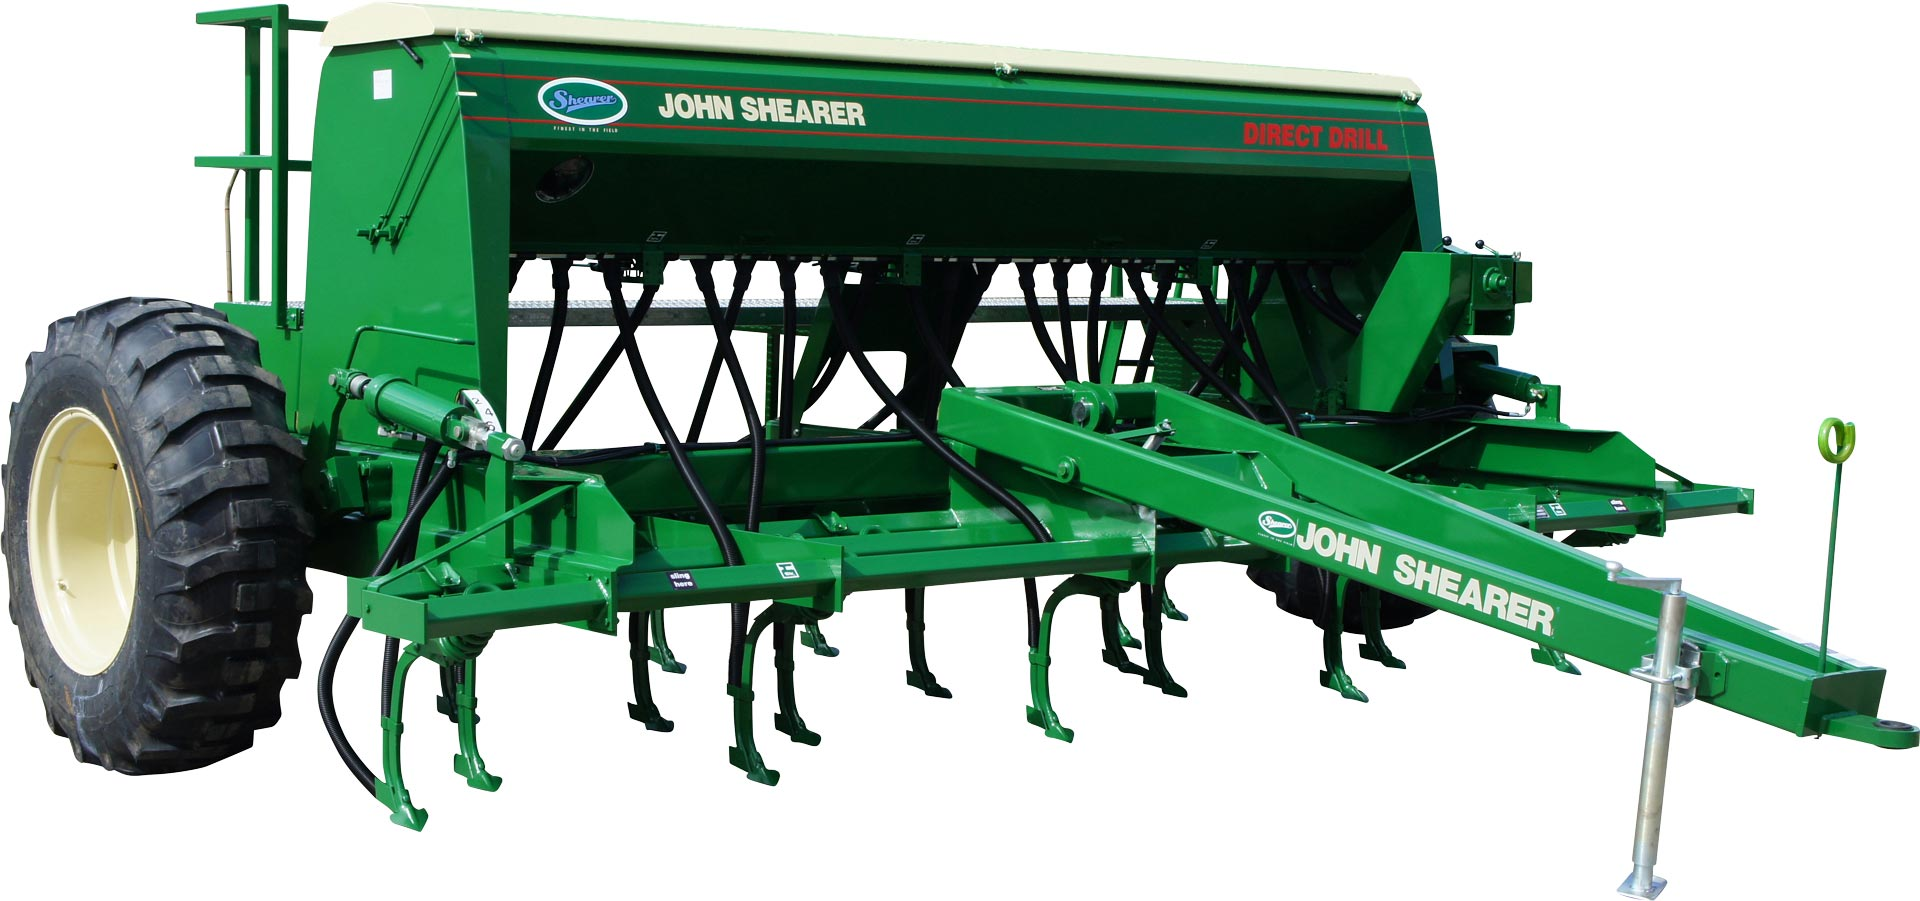 2 Bin (4 or 6 Row) Direct-Drill with Tyne Openers